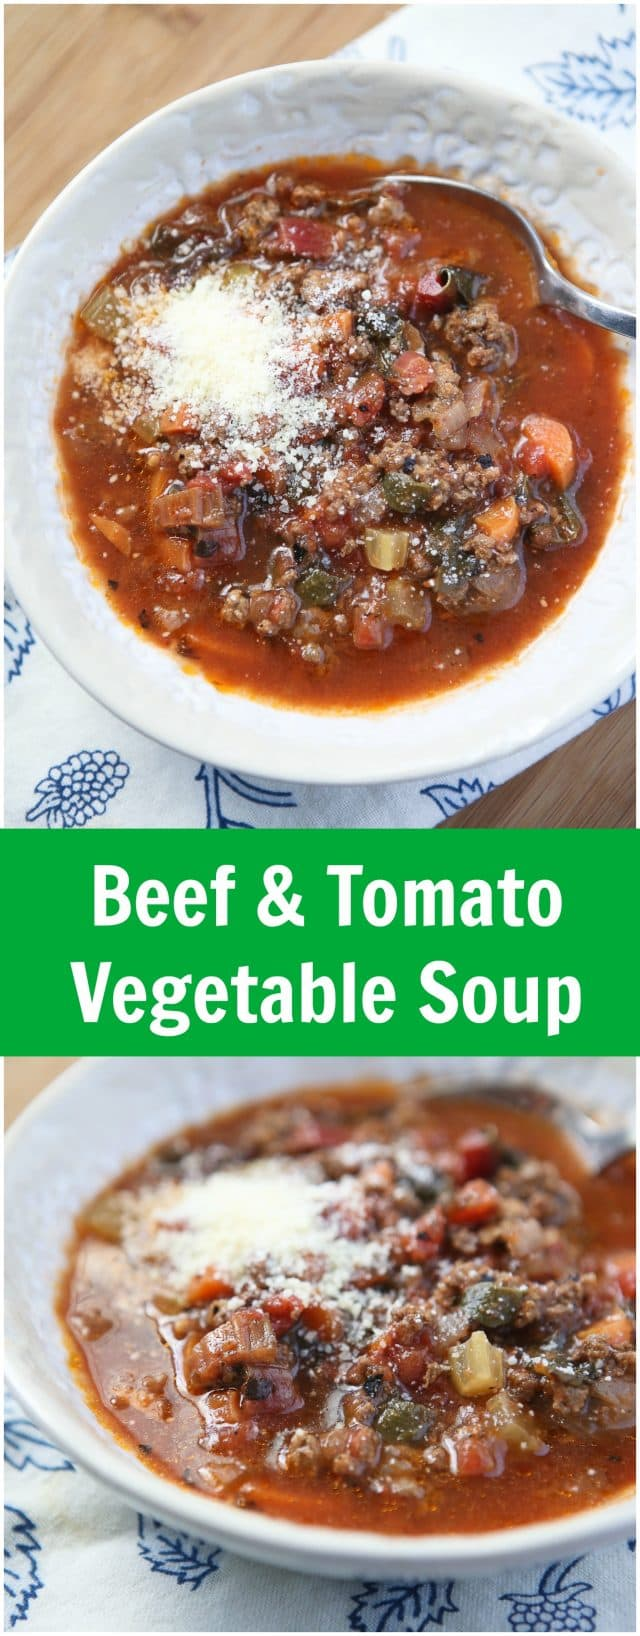 This beefy tomato soup is packed with vegetables - HEALTHY COMFORT FOOD right here! Beef Tomatoe Vegetable Soup Recipe via aggieskitchen.com